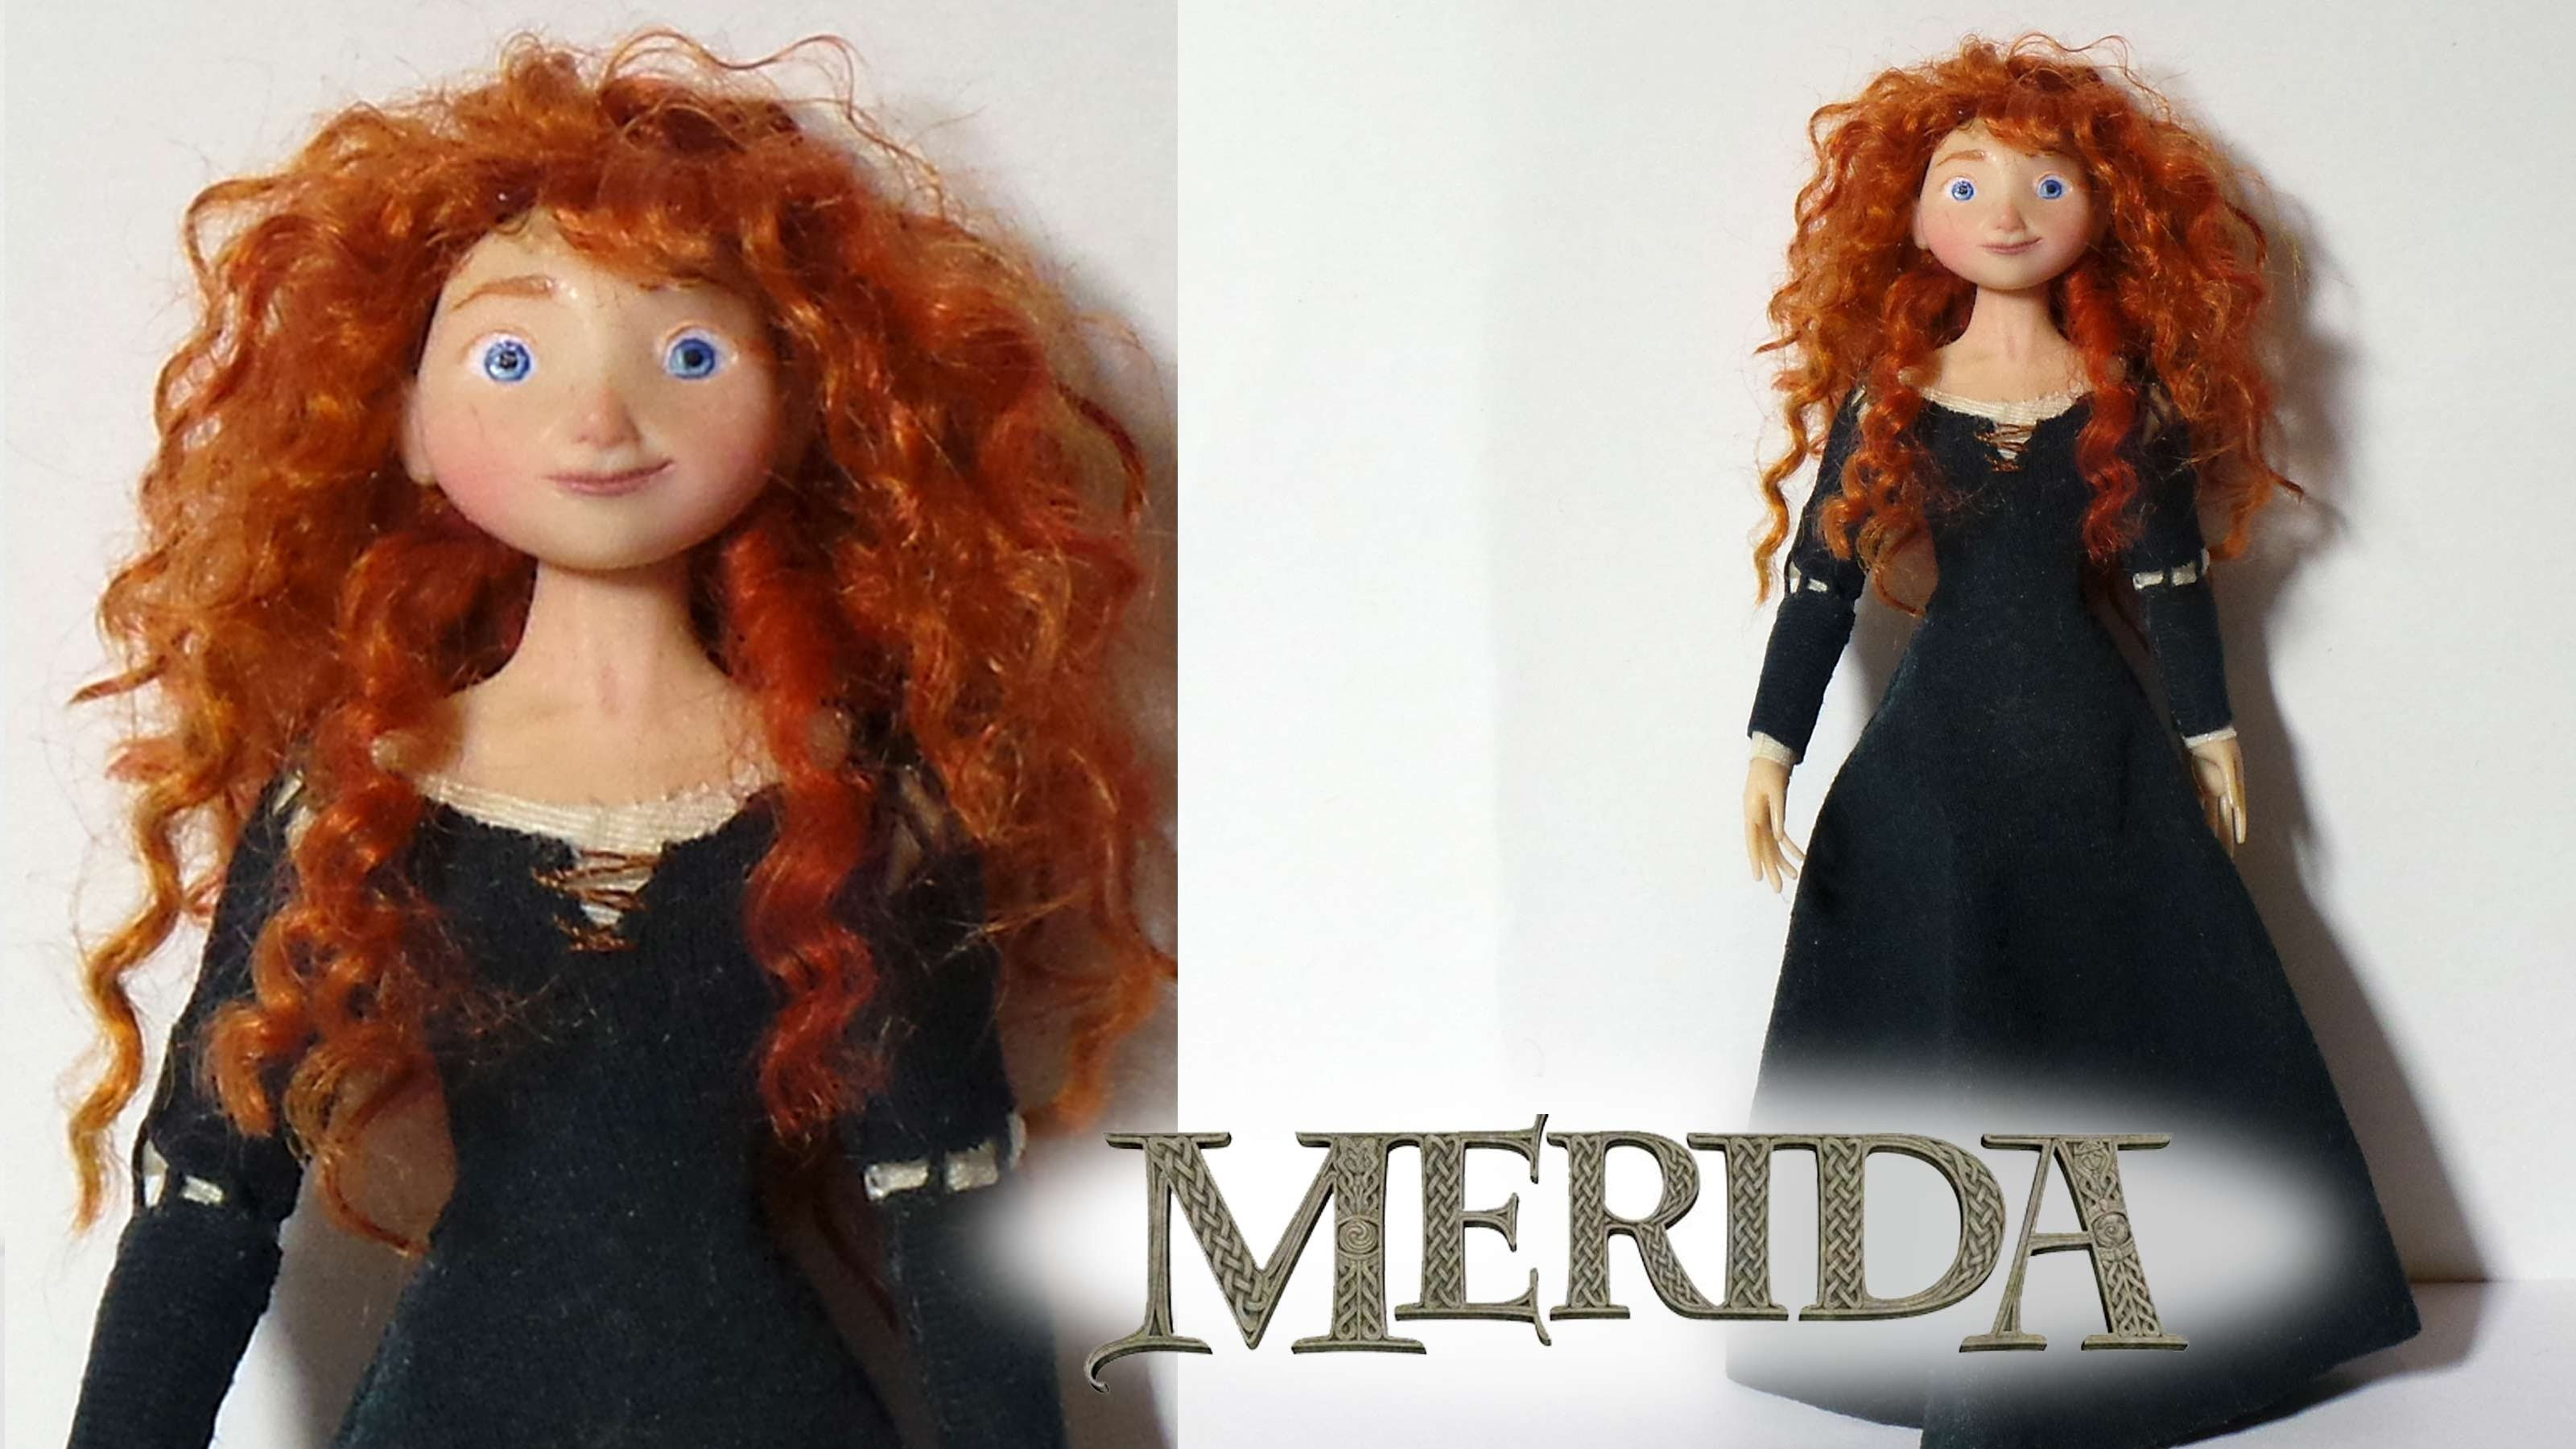 Merida (Brave) Inspired Poseable Doll - Polymer Clay Tutorial